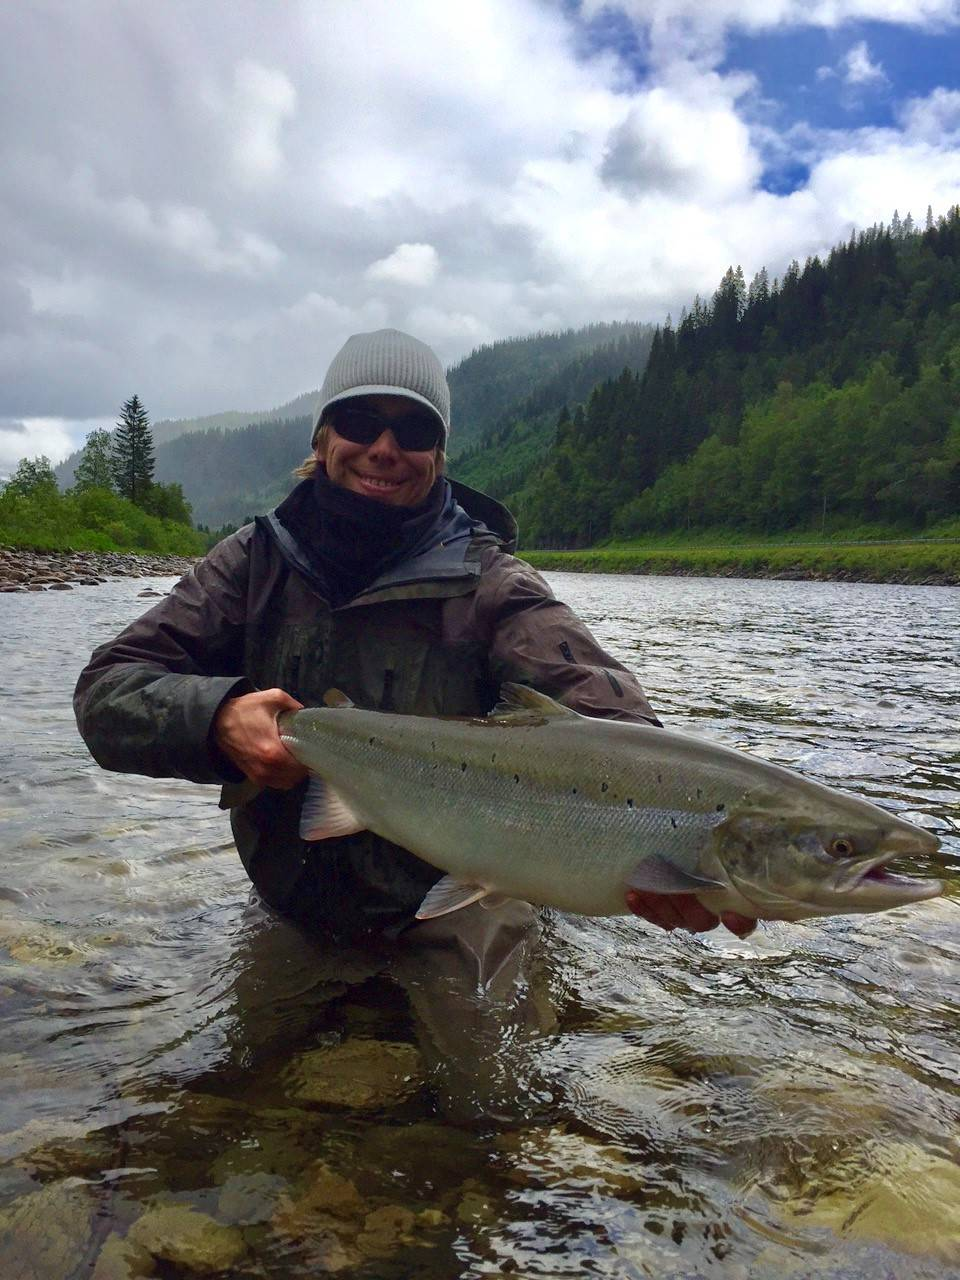 Thies smiles while holding his beautiful salmon from Beat BS1.